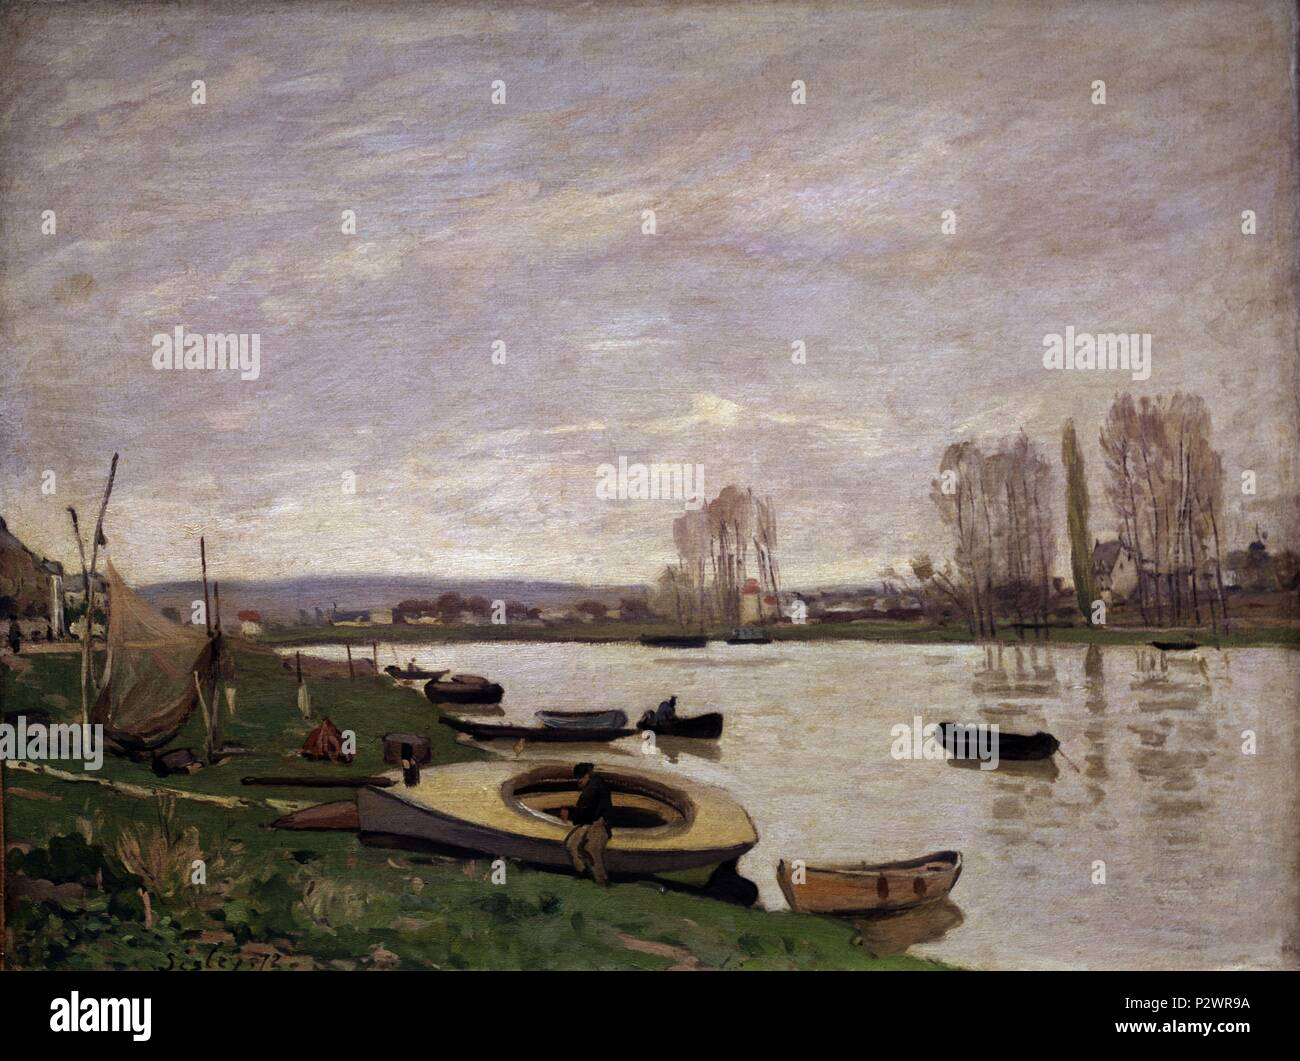 EL SENA EN ARGENTHEUIL 1872. Author: Alfred Sisley (1839-1899). Location: MUSEE D'ORSAY, FRANCE. - Stock Image